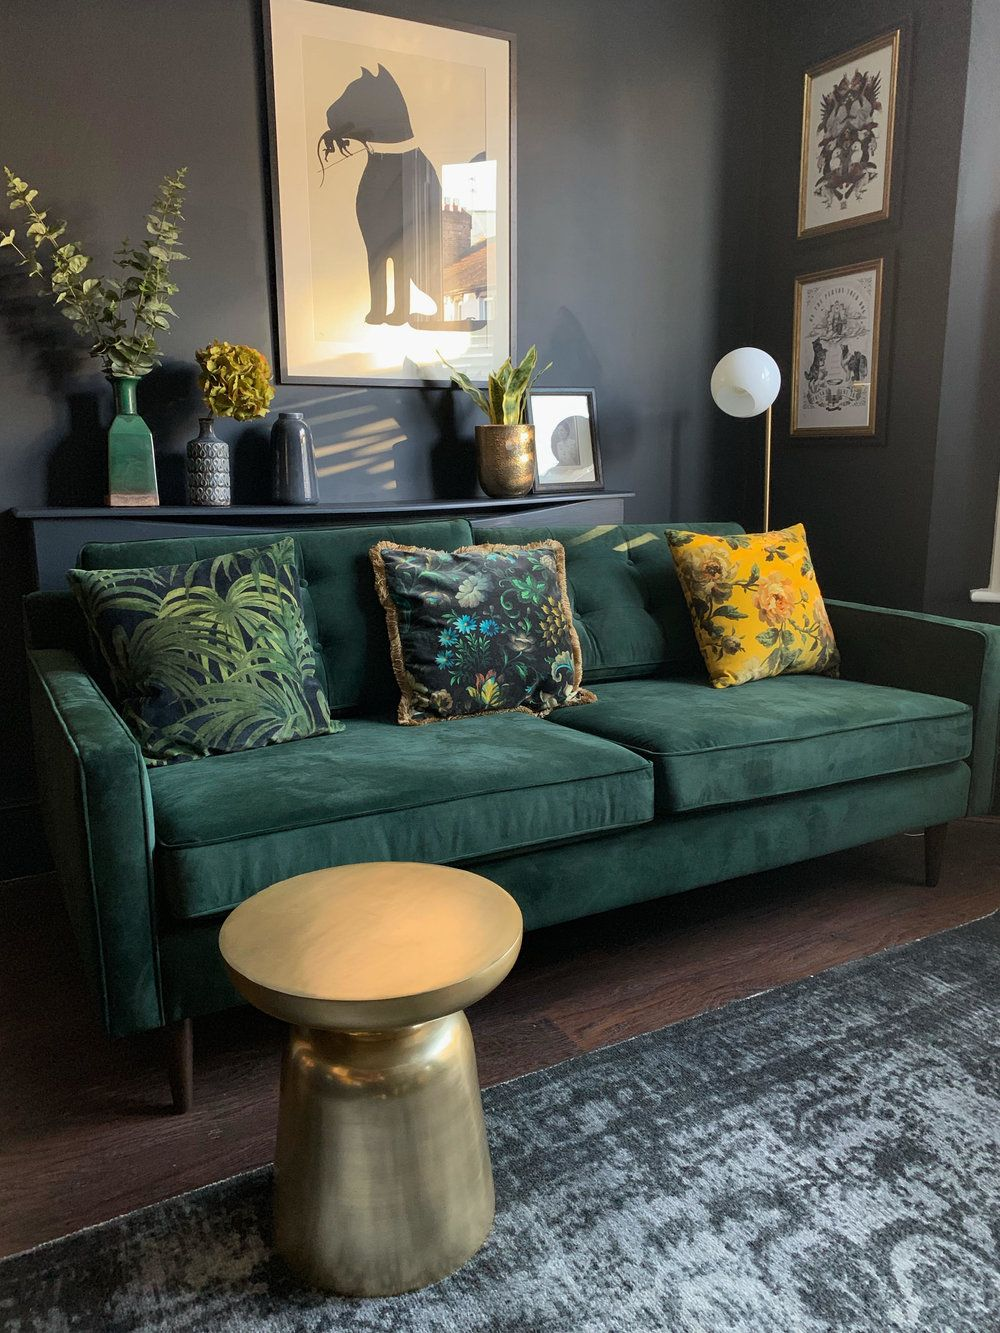 The Girl With The Green Sofablog Homeamanda Cotton Of Houselust A Colourful Victorian Home Renovation Green Living Room Decor Moody Living Room Living Room Green